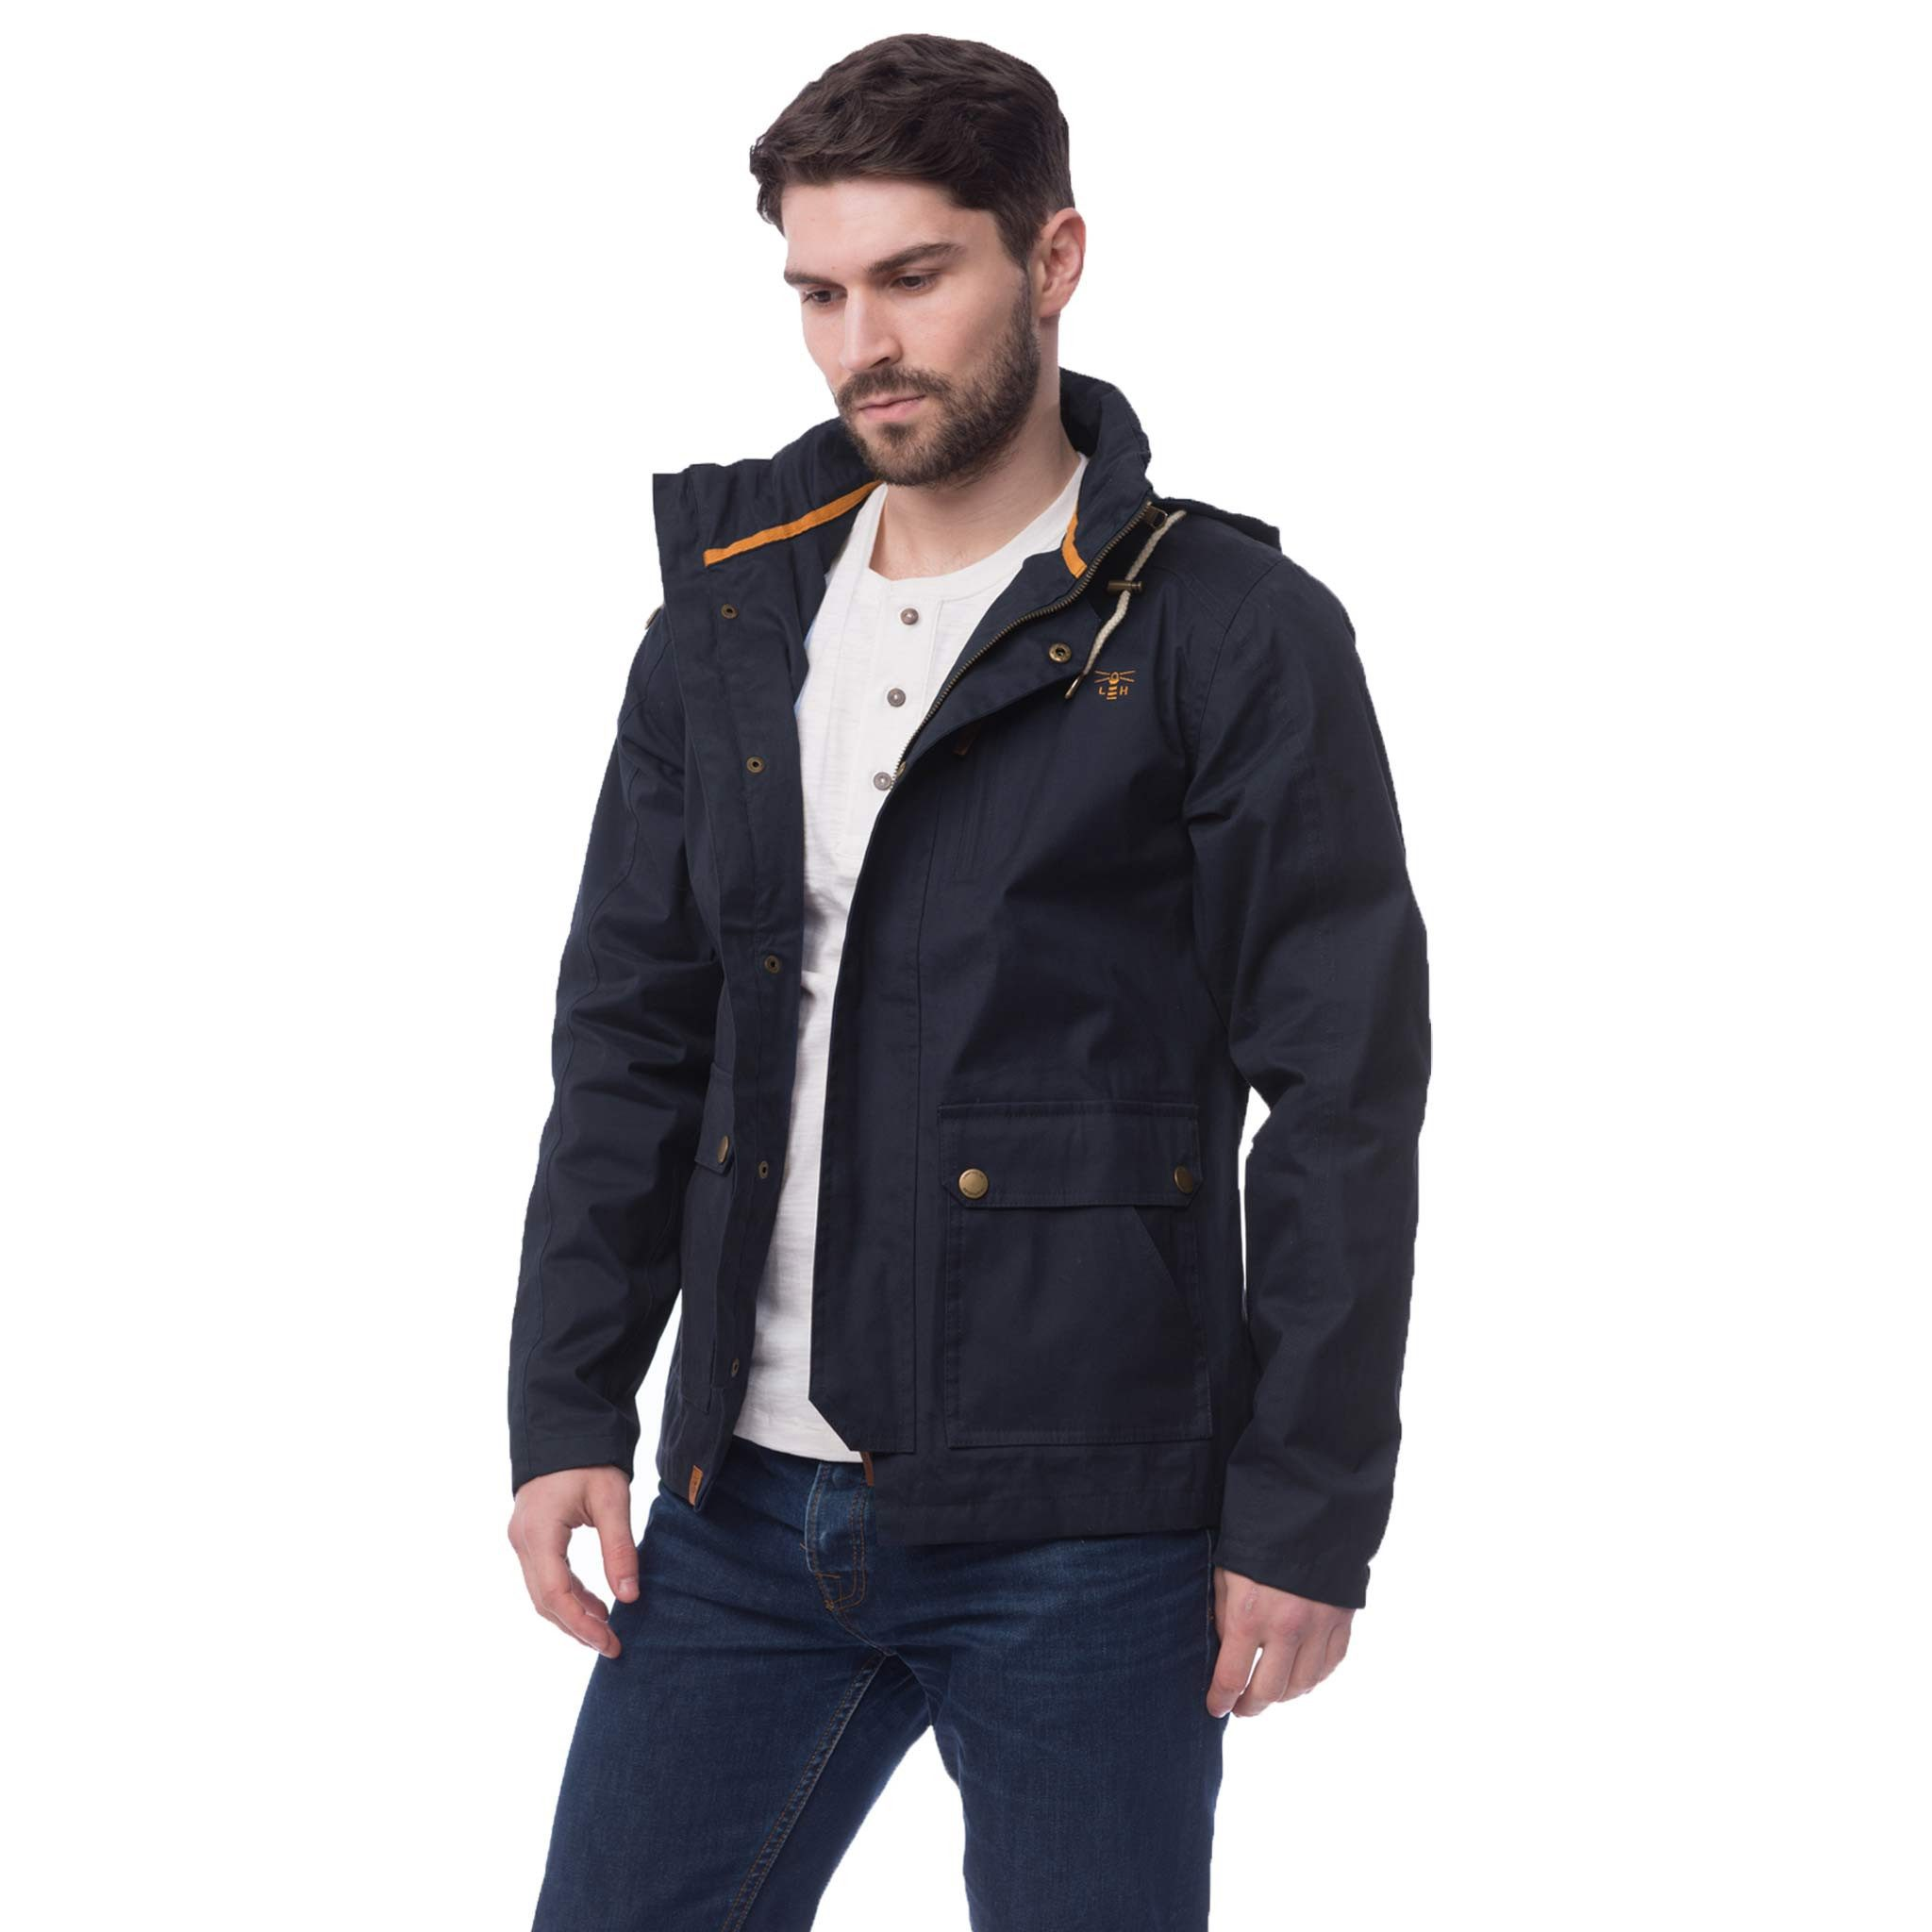 Lighthouse Islander Jacket - Navy